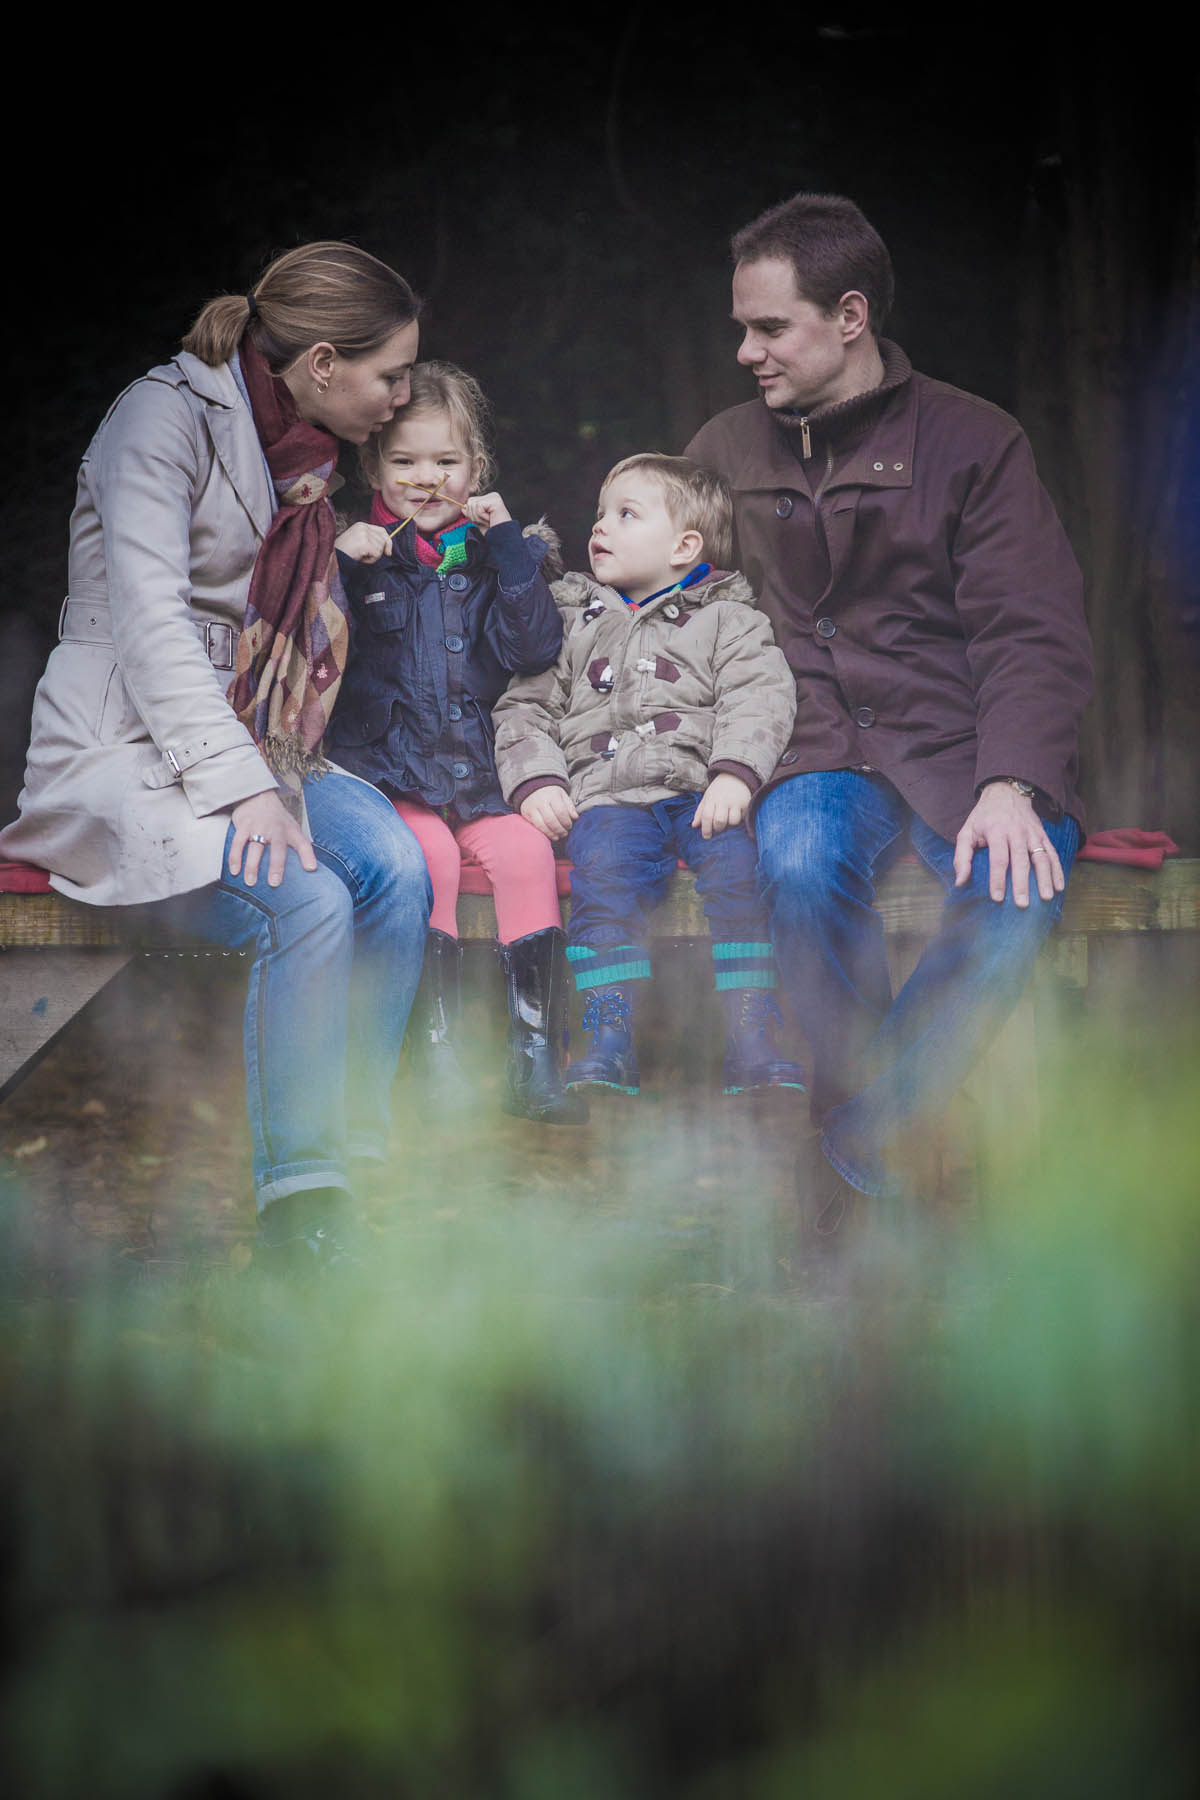 Purley Family Photographer